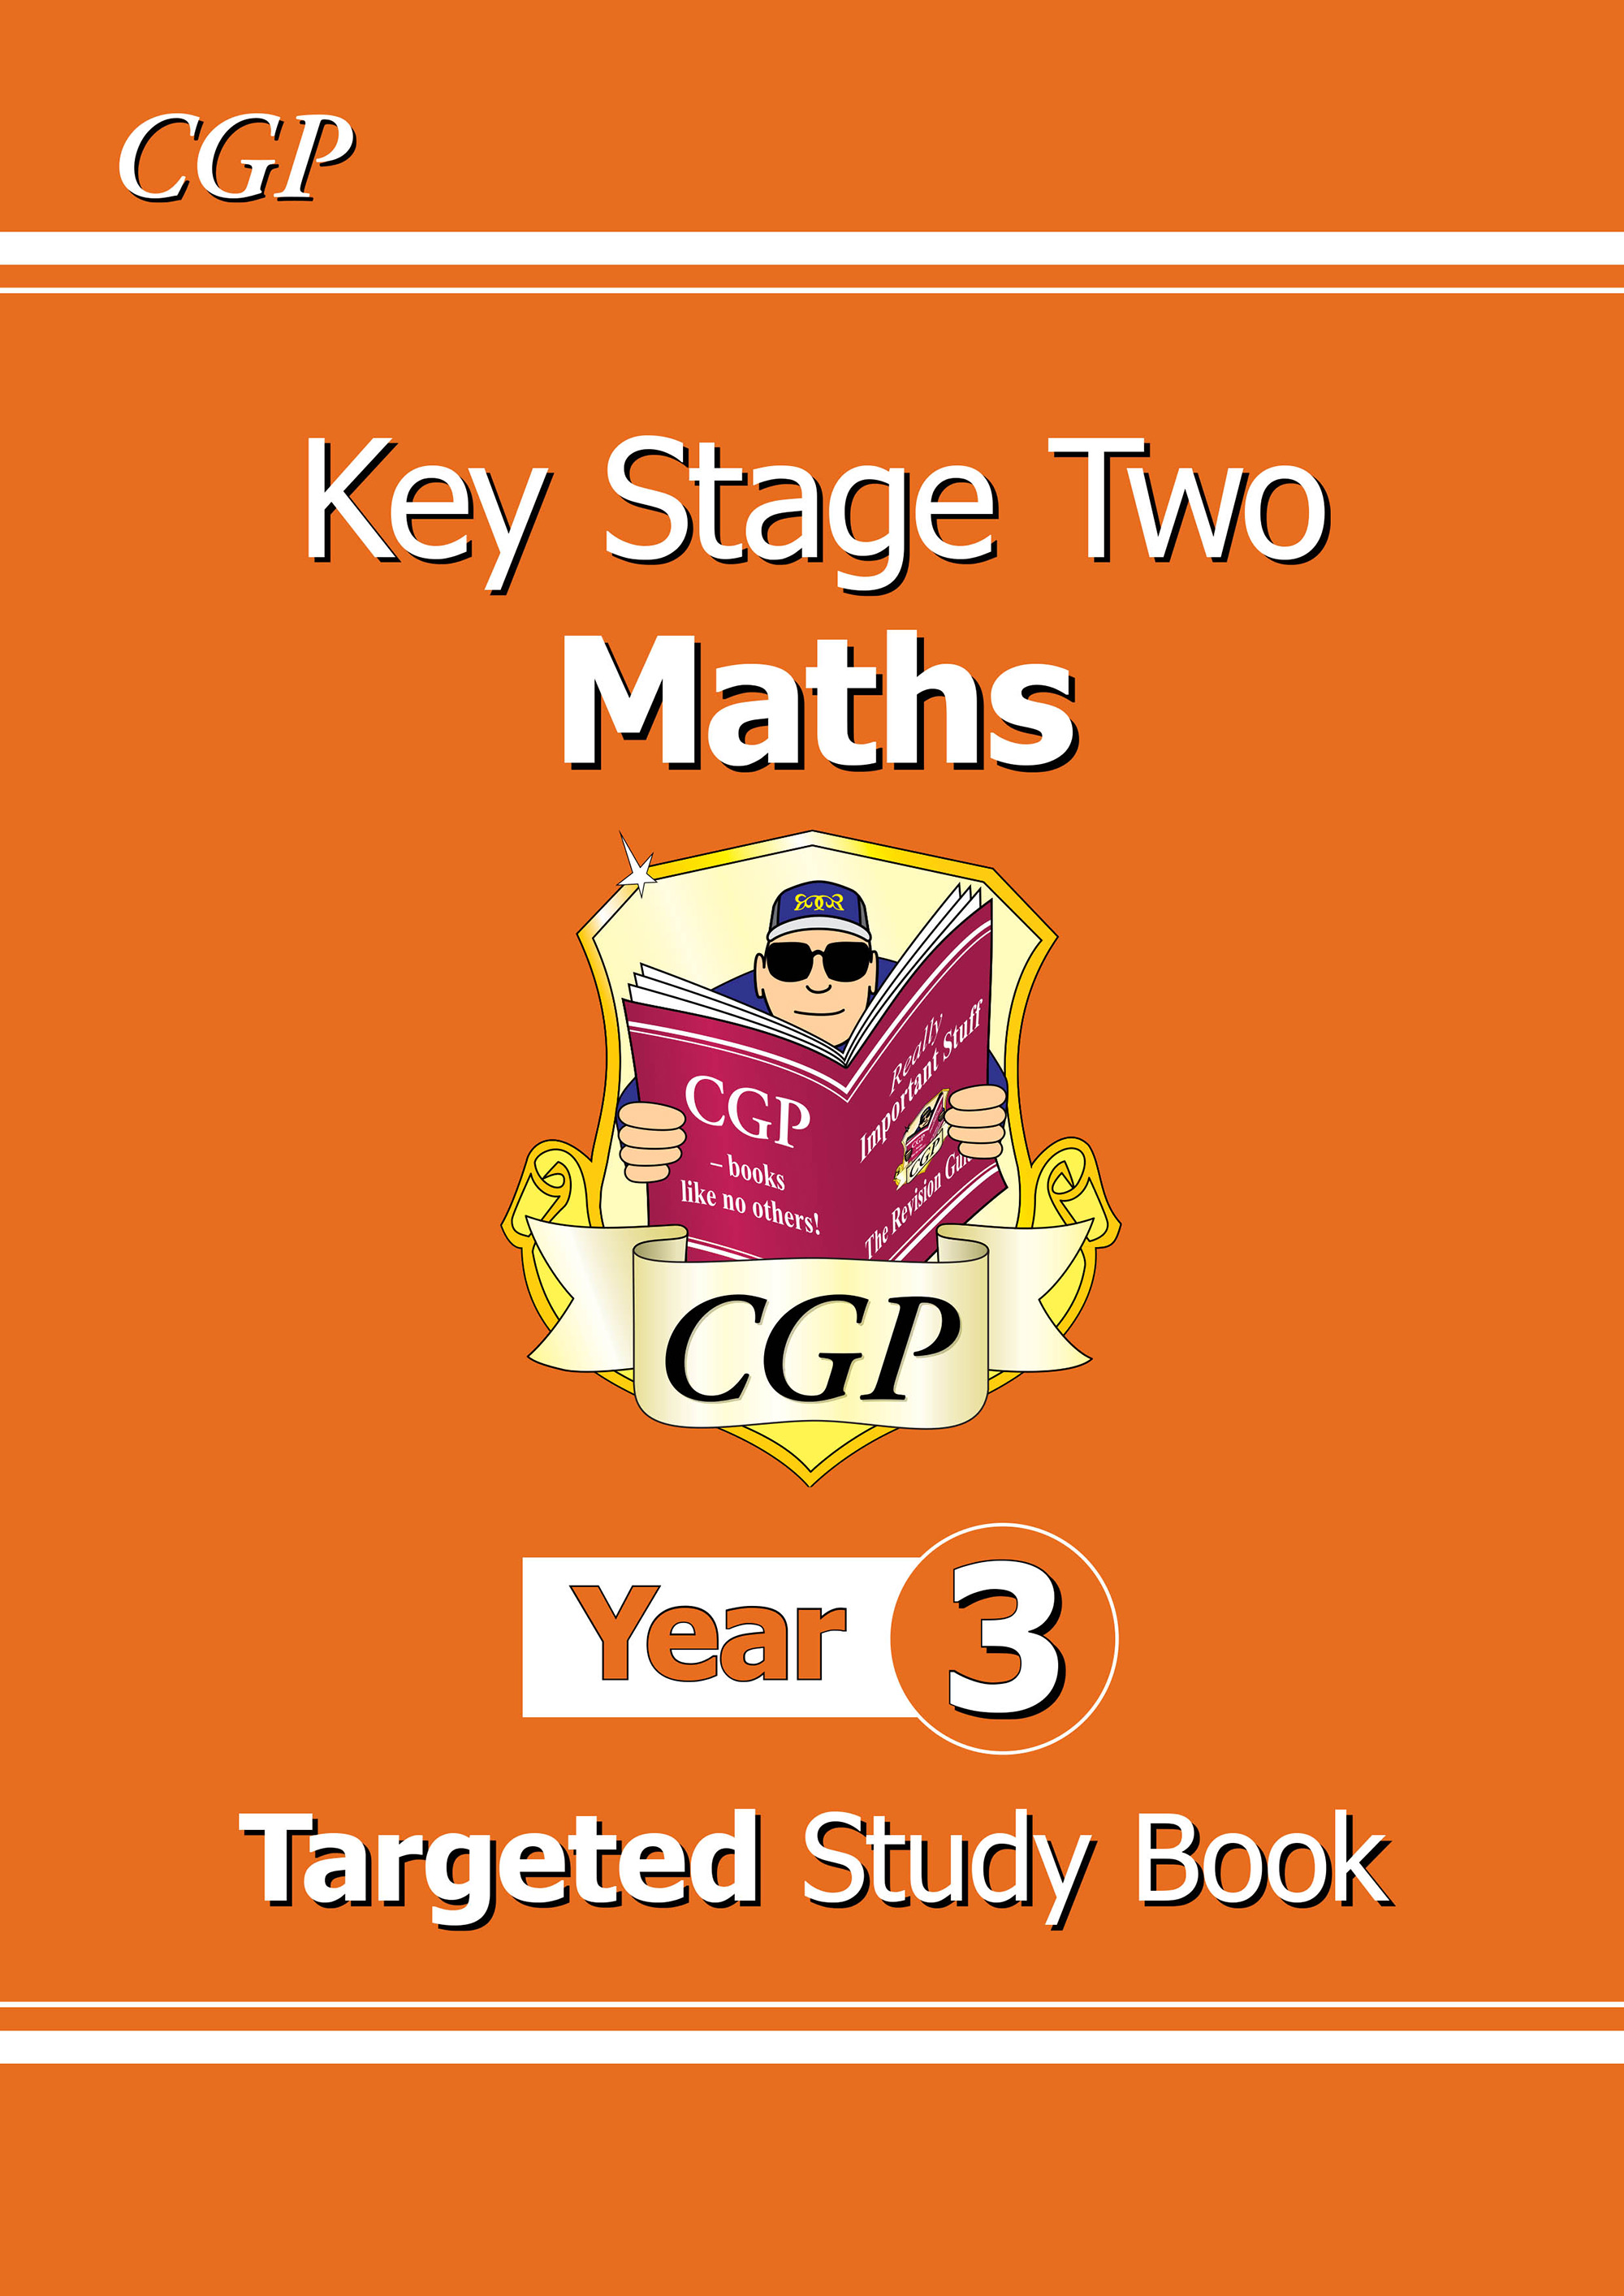 M3R23D - KS2 Maths Targeted Study Book - Year 3 Online Edition